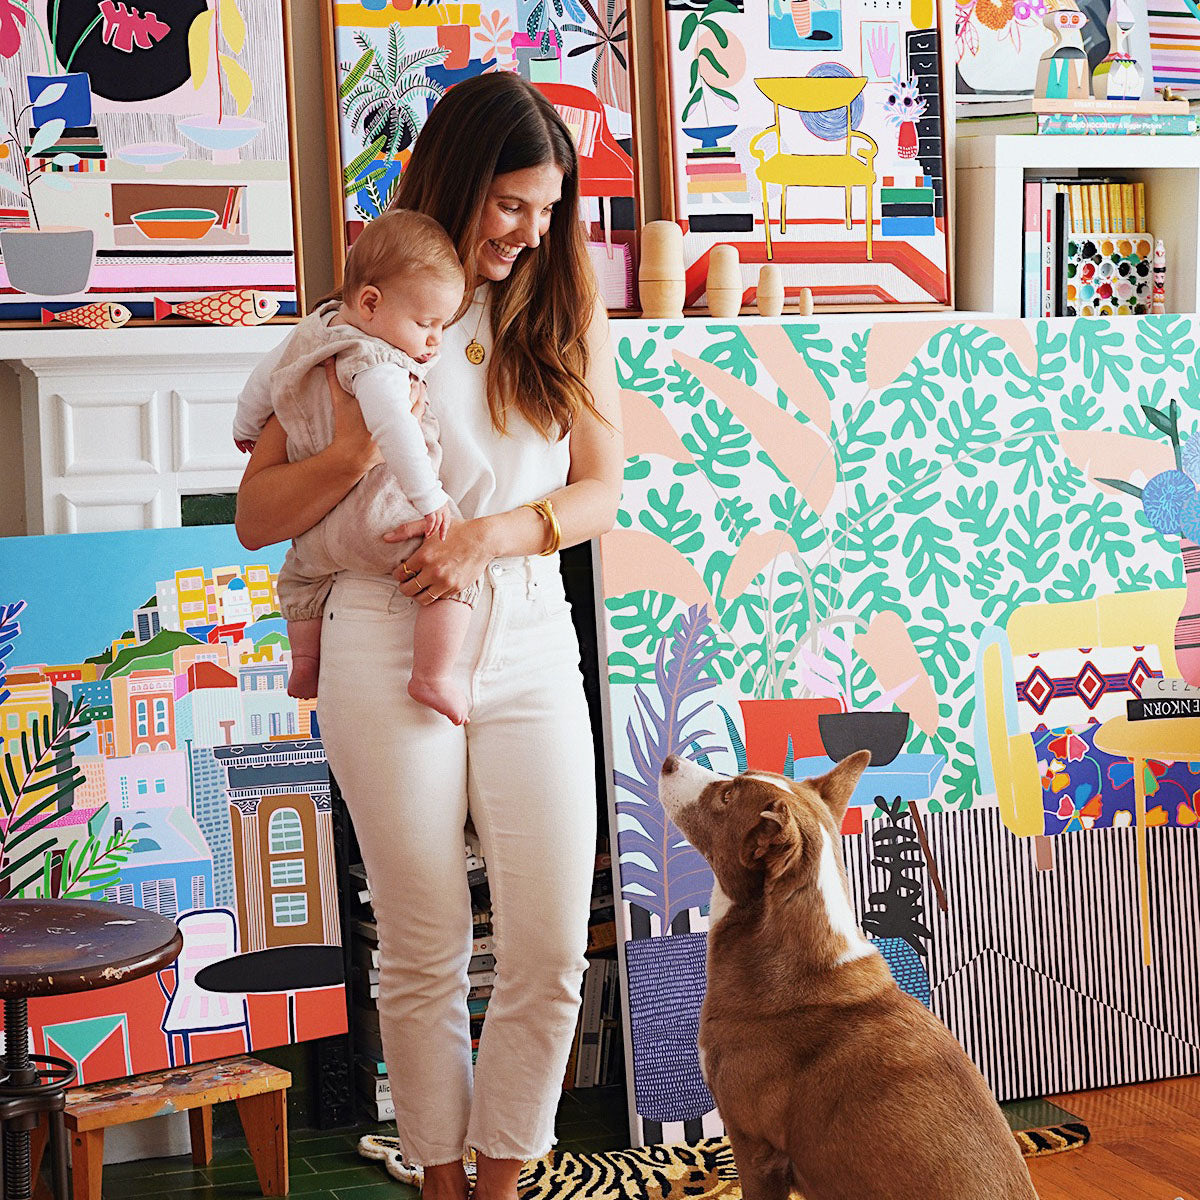 artist and her baby and dog in her studio